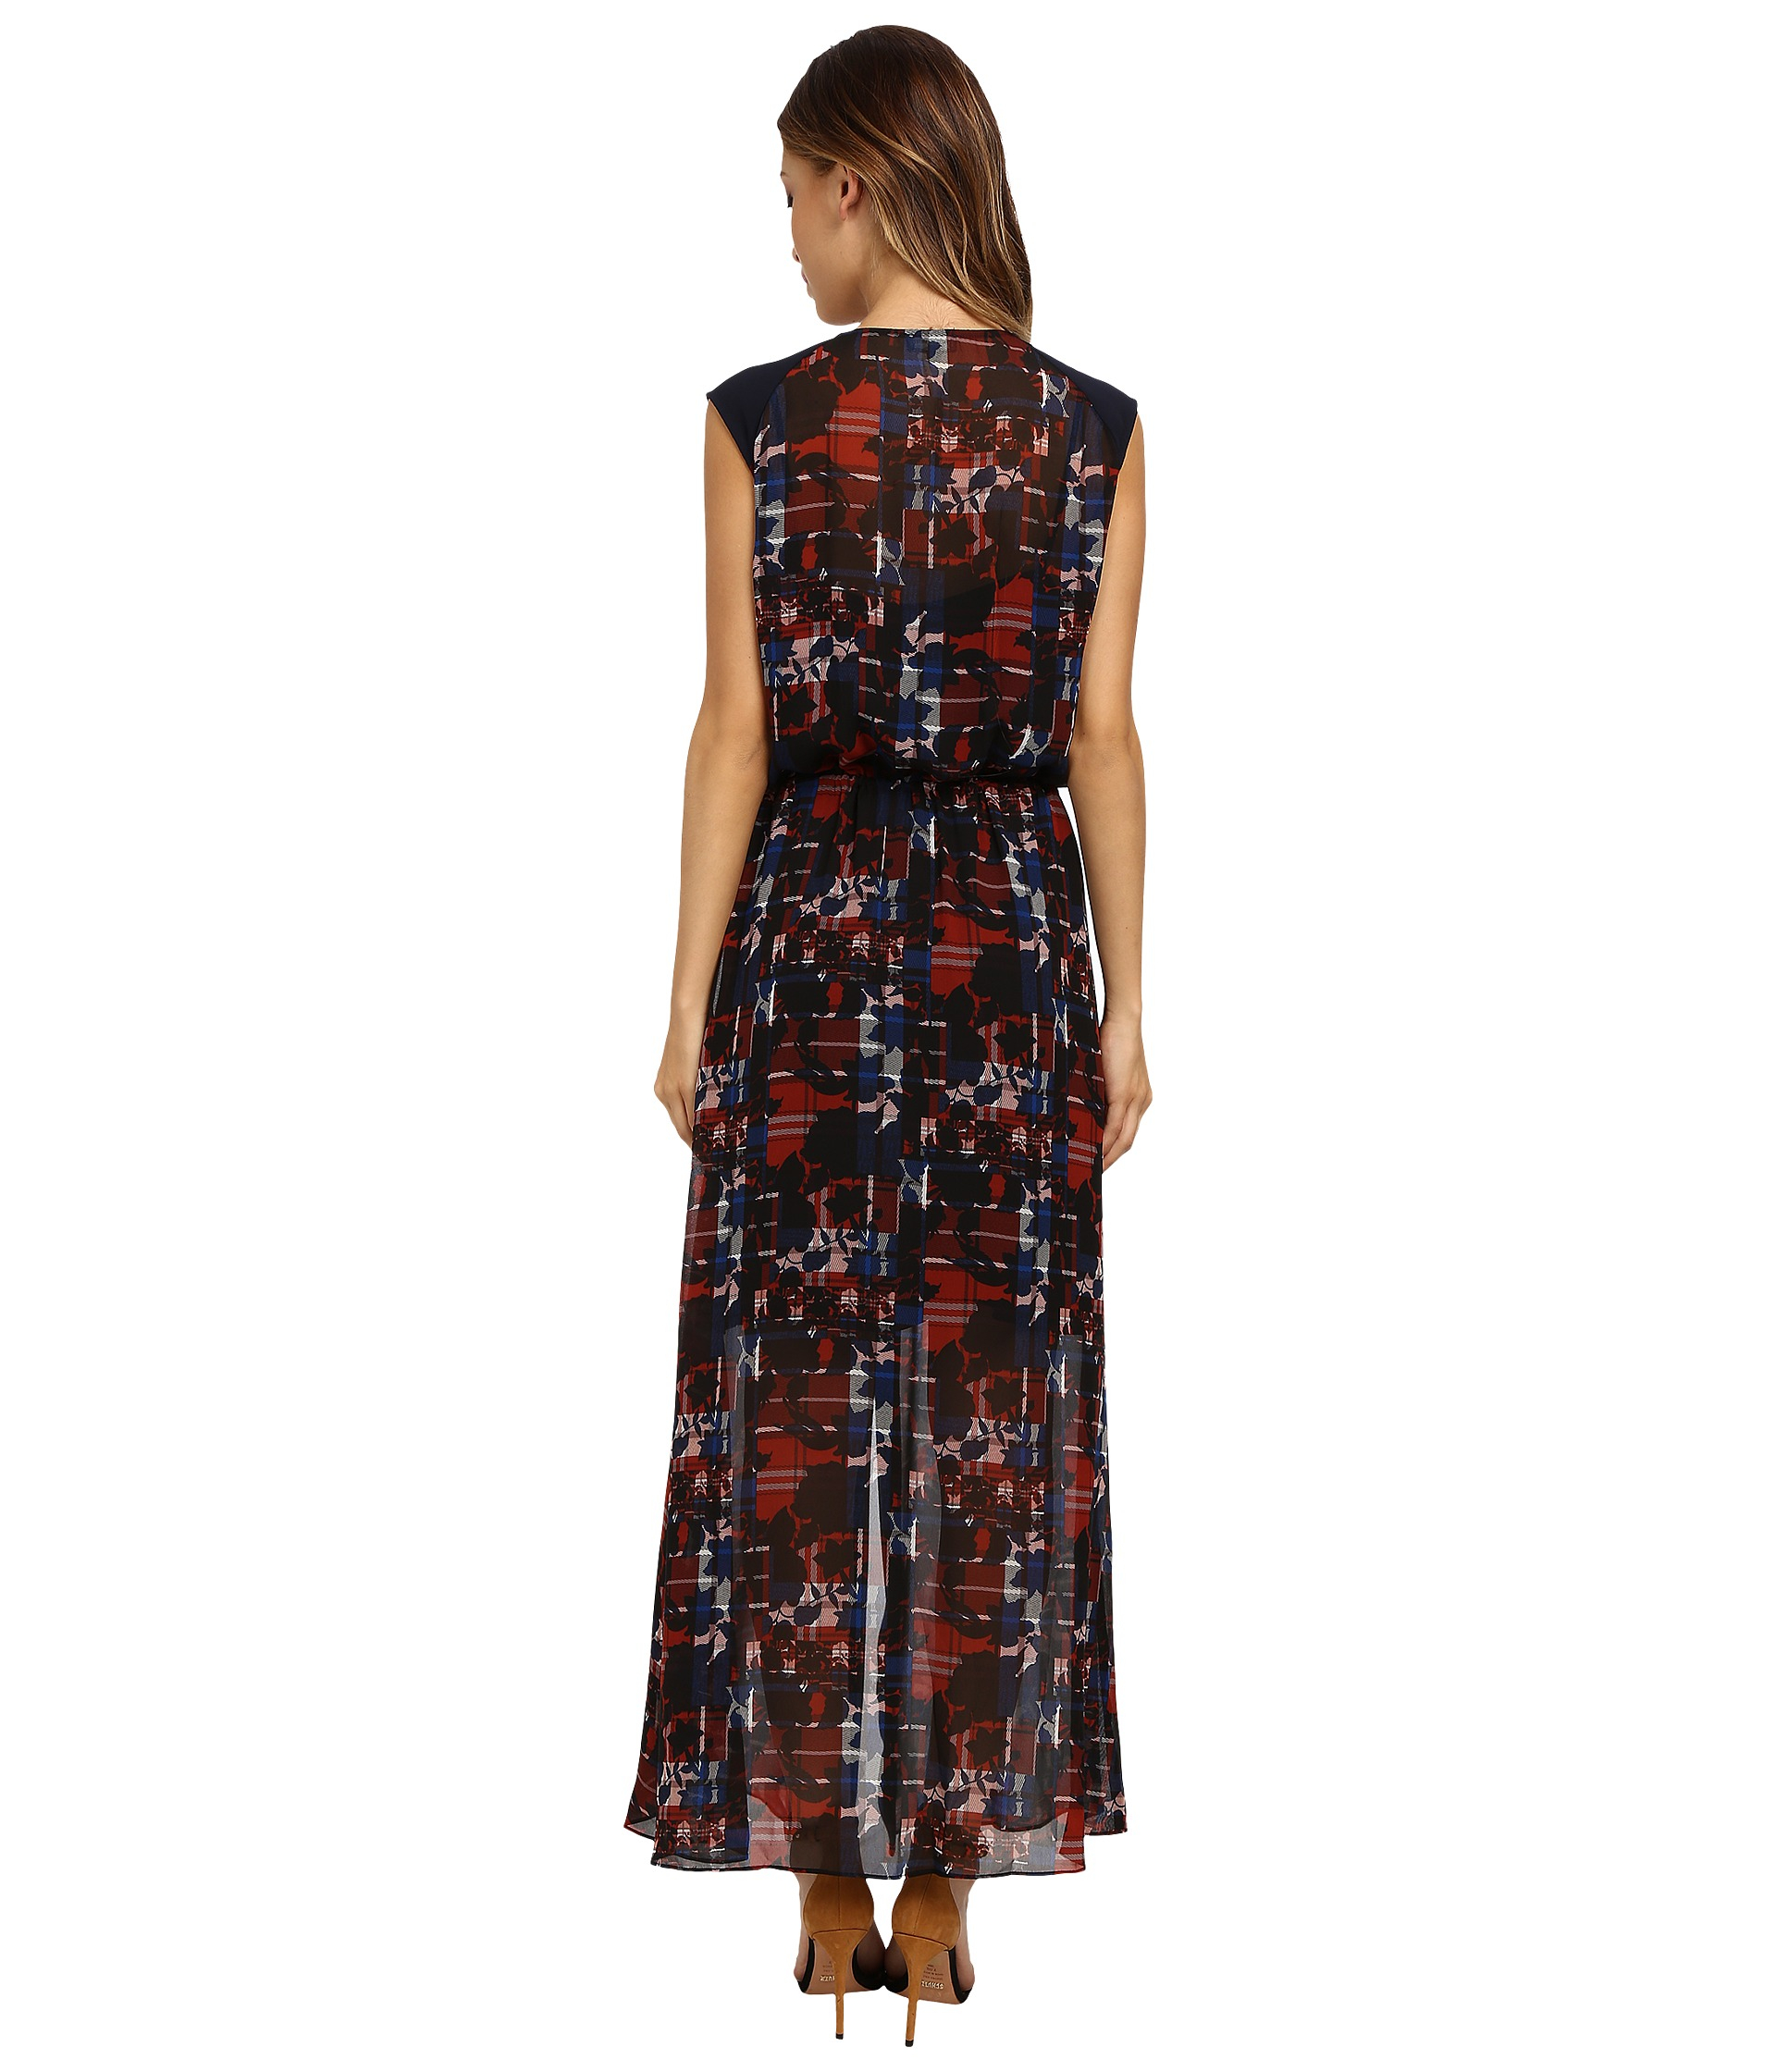 4327551afdb1 Lyst - Vince Camuto Cap Sleeve Floral Plaid Tie Waist Maxi Dress